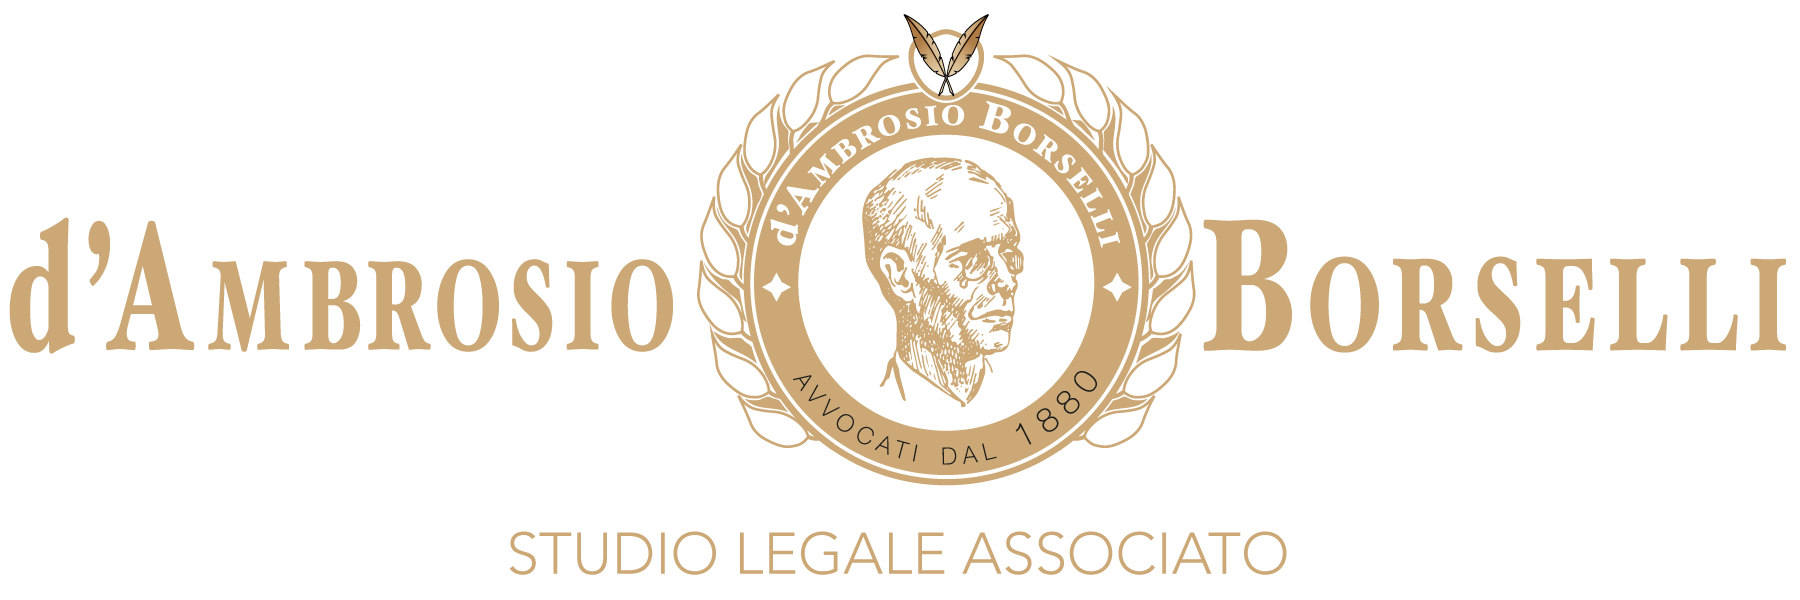 https://www.studioassociatoborselli.it/wp-content/uploads/2020/04/logo_dAmbrosio_OK.png